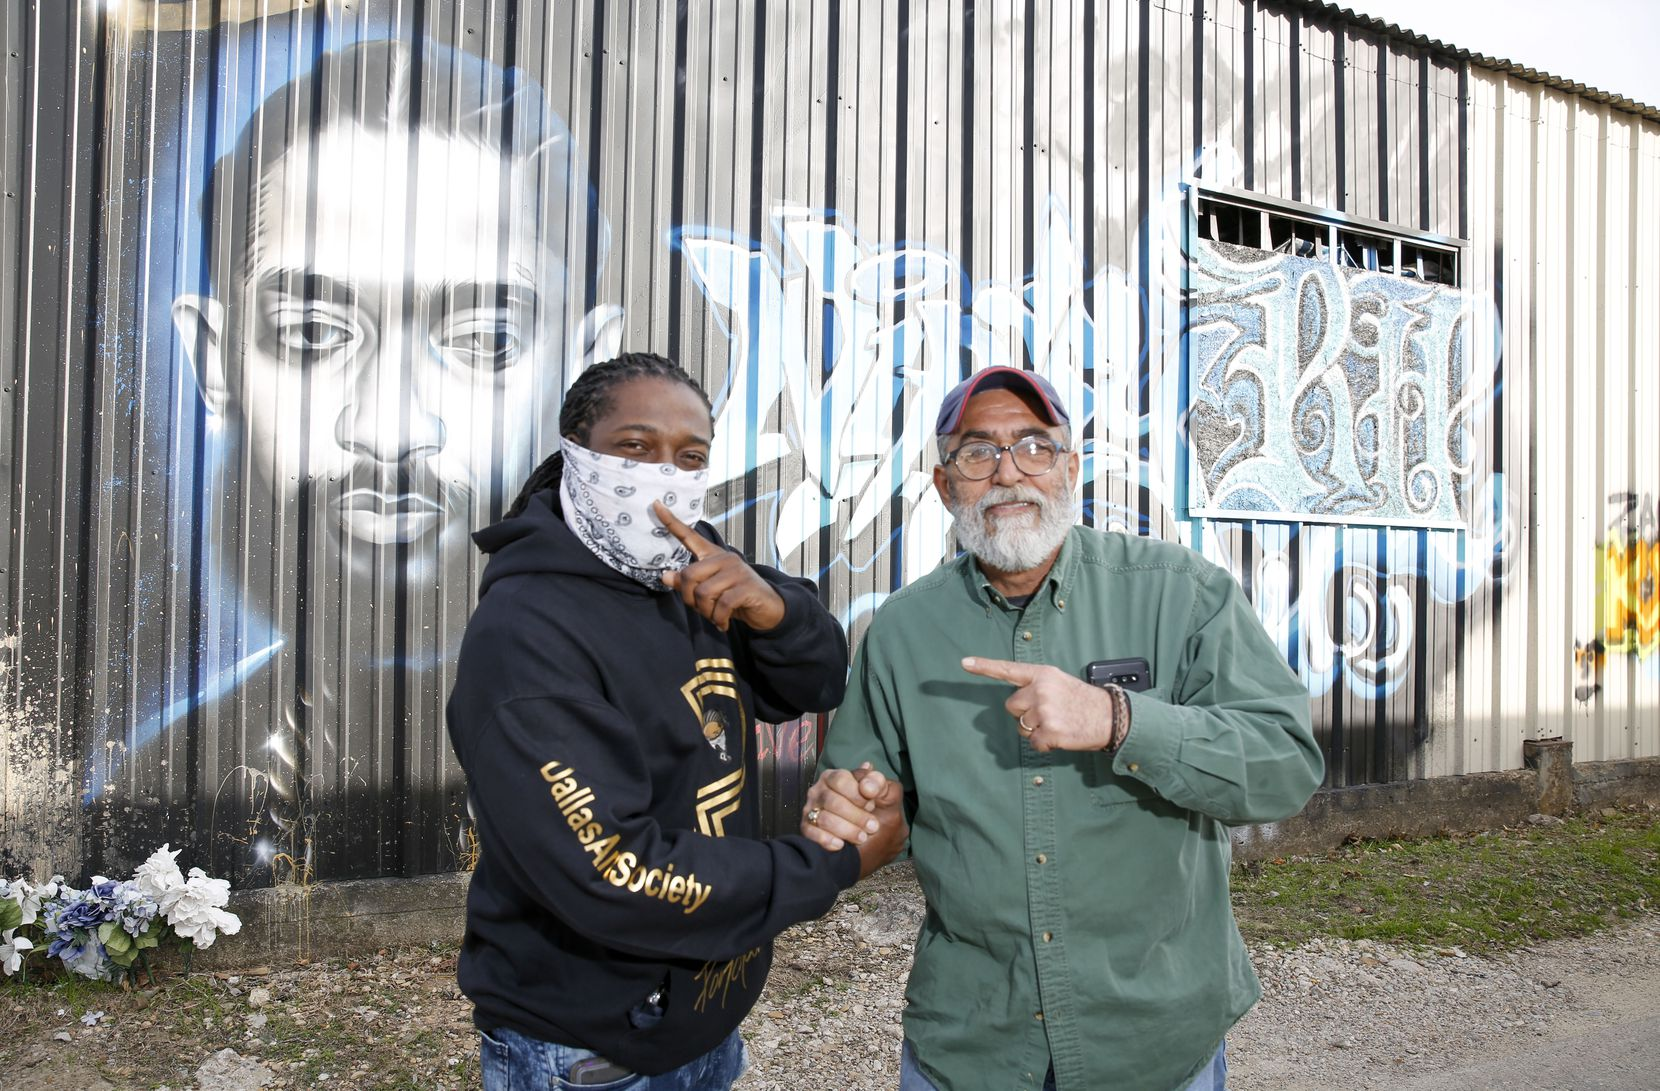 Theo Ponchaveli (left) and Auto Exports Owner Massoud Nasseri stand in front of Ponchaveli's homage to slain rapper Nipsey Hussle on the side of Auto Exports' building in West Dallas on Dec. 6, 2019.